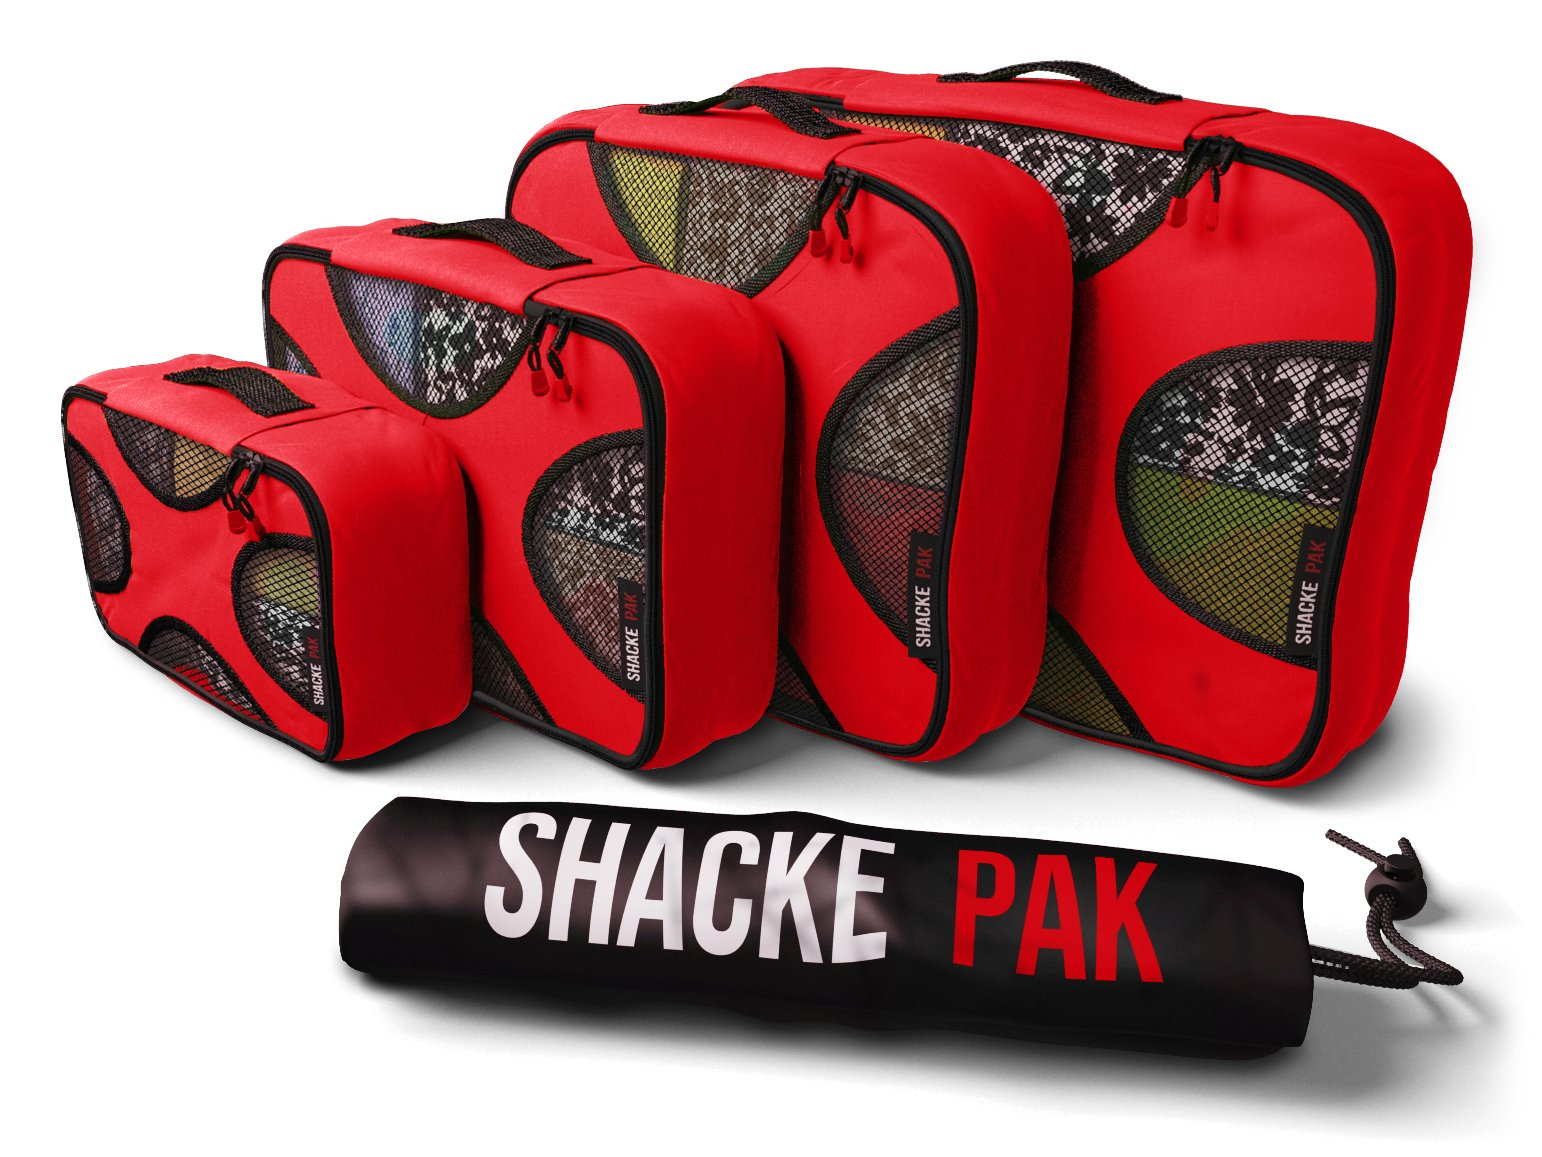 Shacke Pak - 4 Set Packing Cubes - Travel Organizers with Laundry Bag (Warm Red)